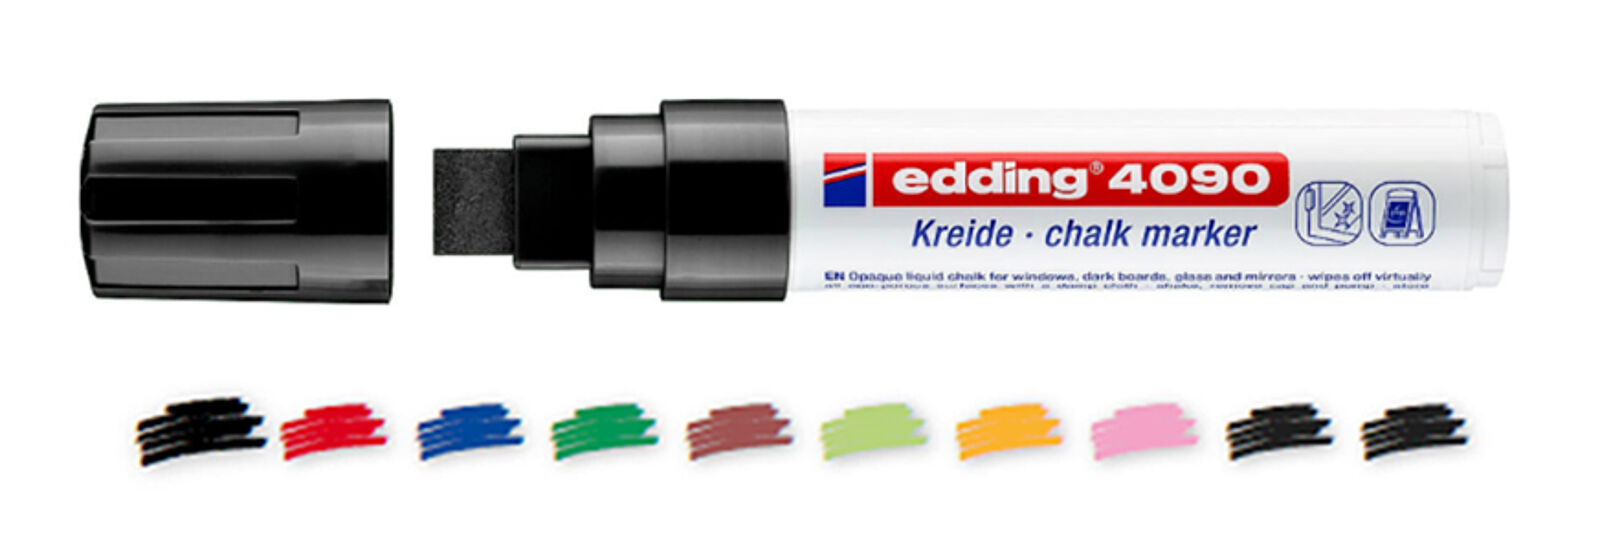 Product image of the chalk marker edding 4090